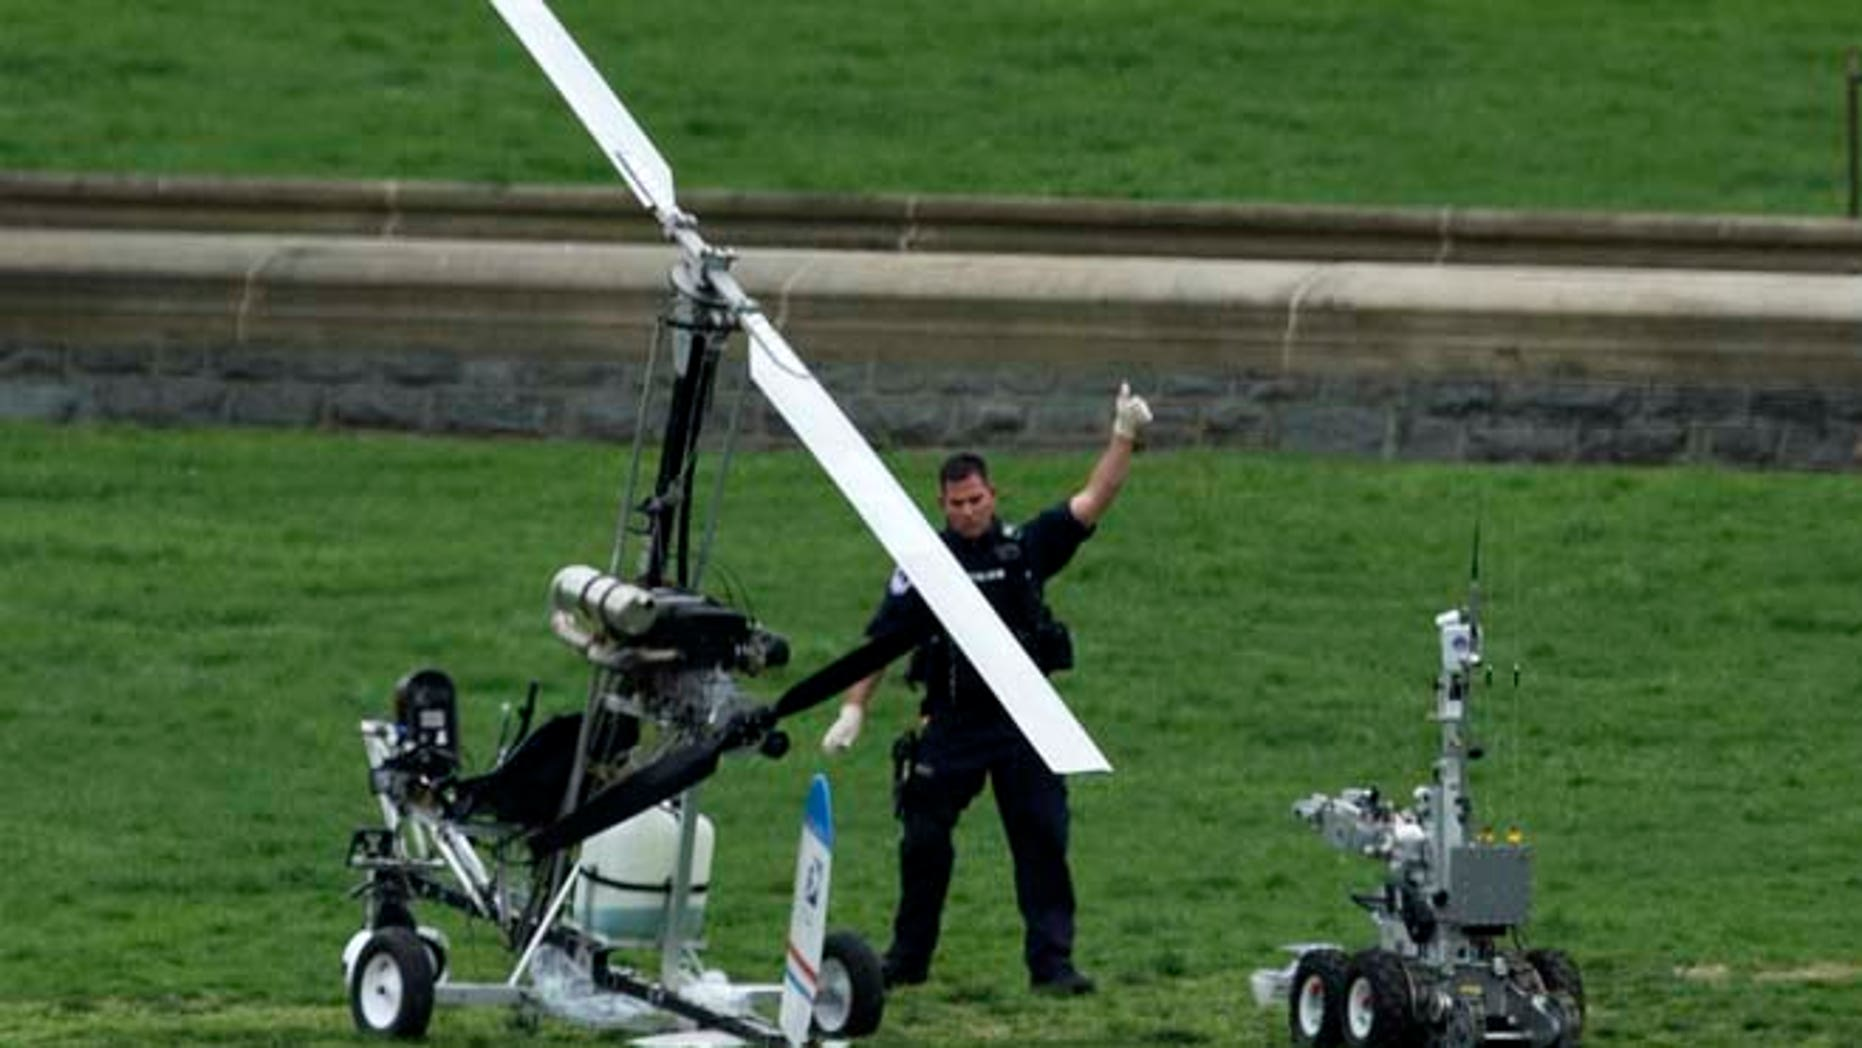 April 15: A Capitol Police officer flashes a thumbs up after inspecting the small helicopter a man landed on the West Lawn of the Capitol.